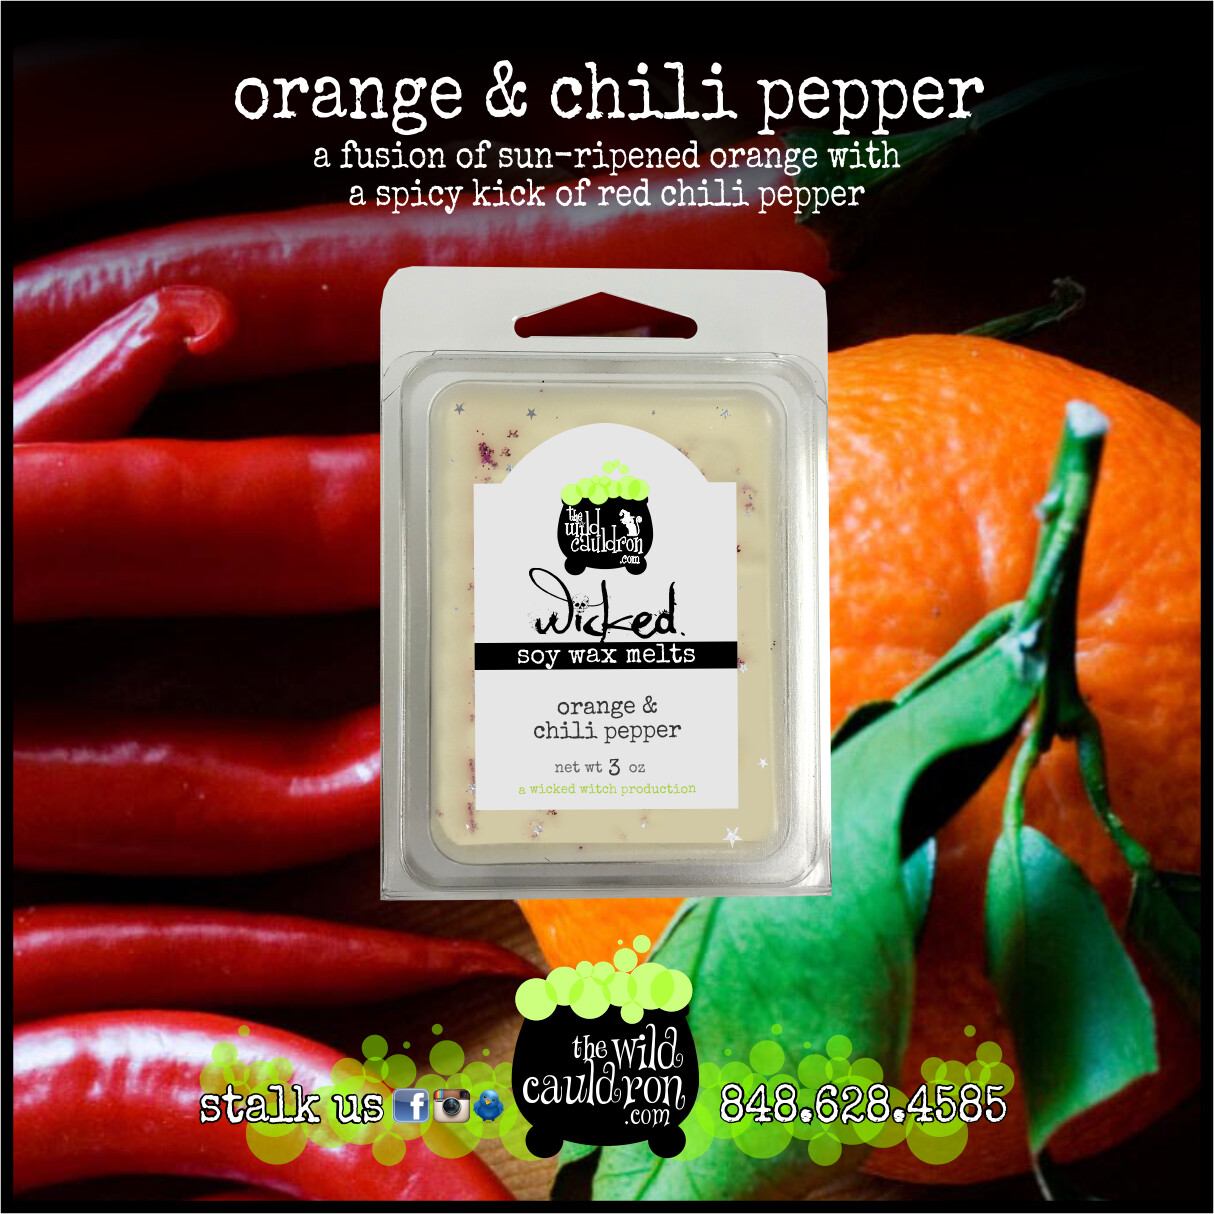 Orange and Chili Pepper Wicked Wax Melts